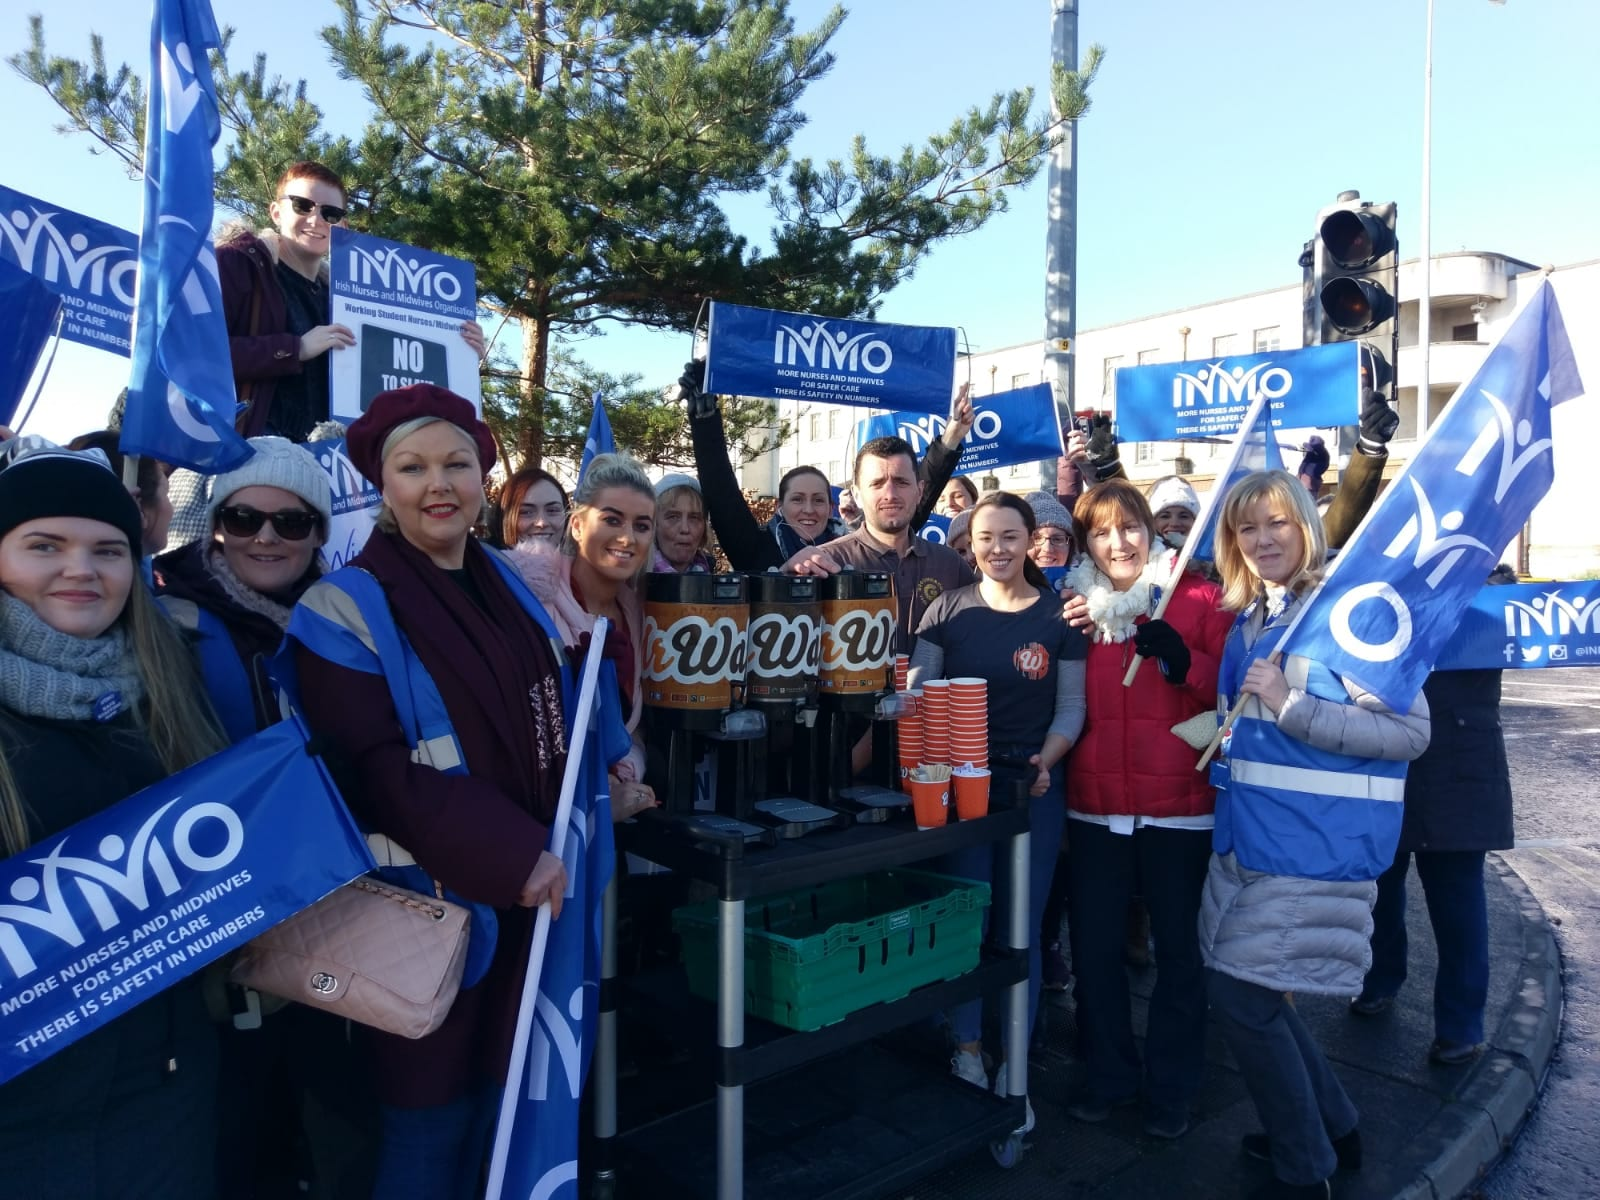 Good news: Galway supports striking nurses, UHG less crowded